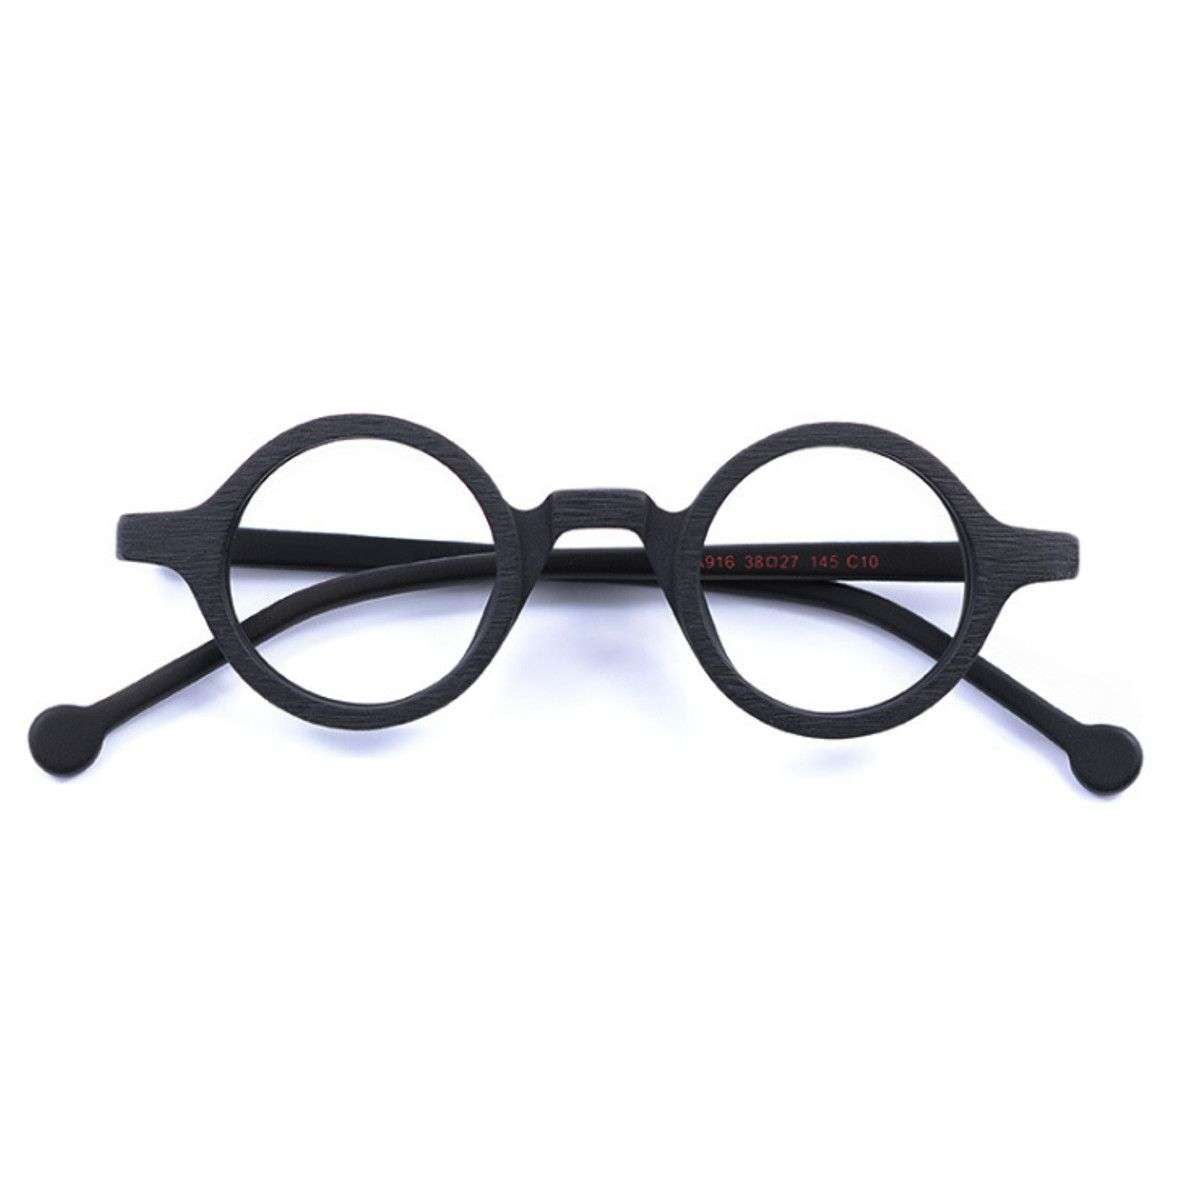 cbc3247637 38mm Vintage Small Round Eyeglass Frames Acetate Rx-able Spectacles Glasses